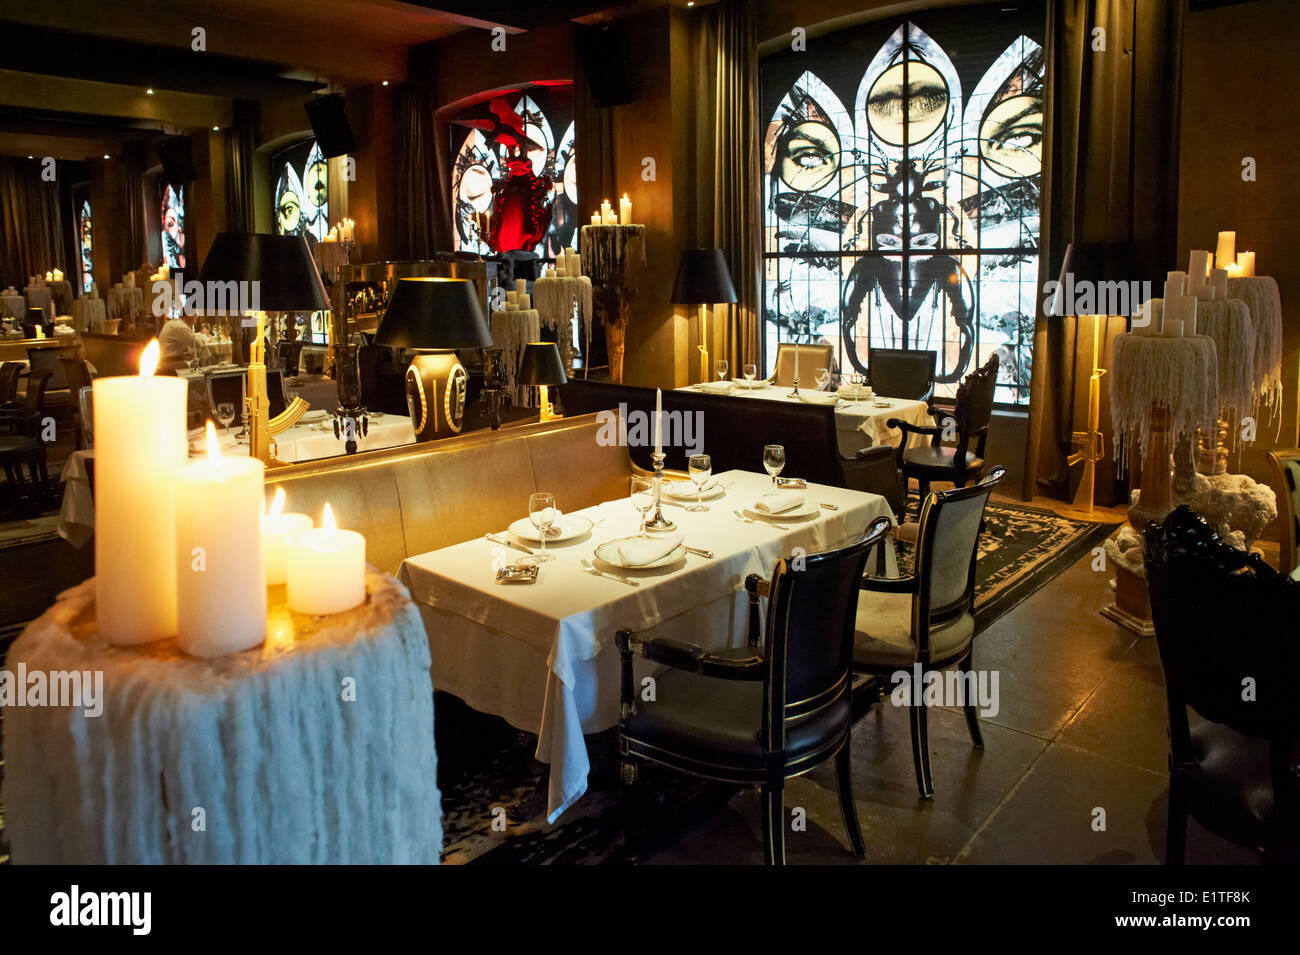 Russia moscow bon restaurant by philippe starck stock photo russia moscow bon restaurant by philippe starck arubaitofo Images